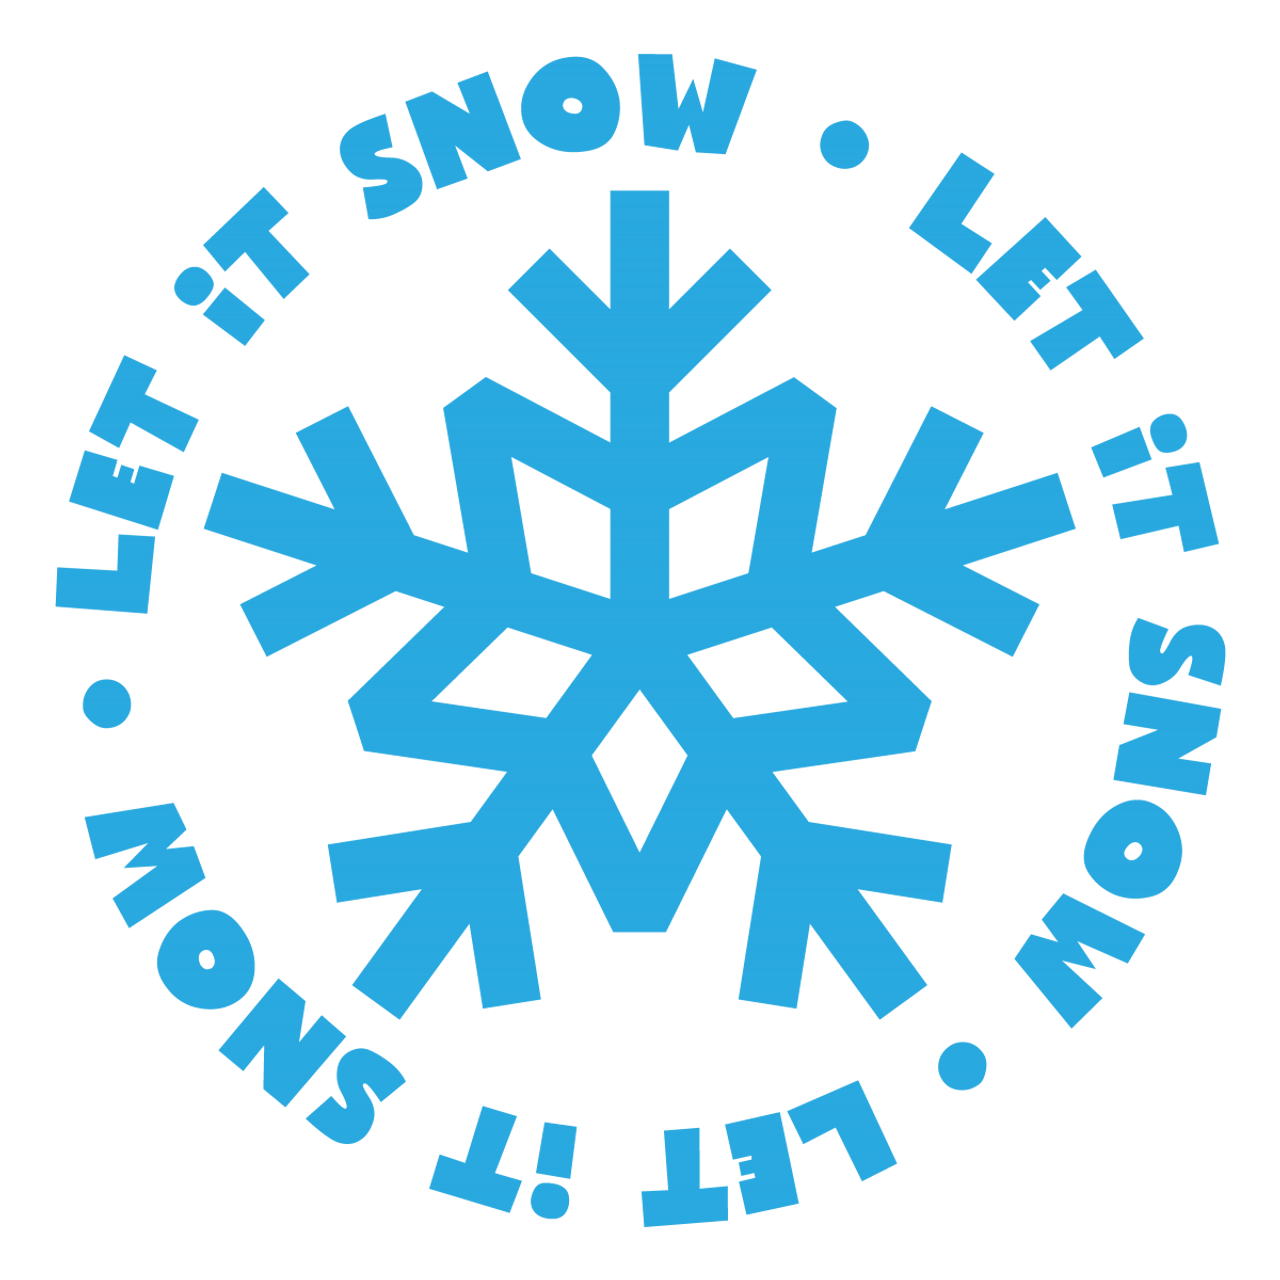 Let It Snow Svg Svg Eps Png Dxf Cut Files For Cricut And Silhouette Cameo By Savanasdesign